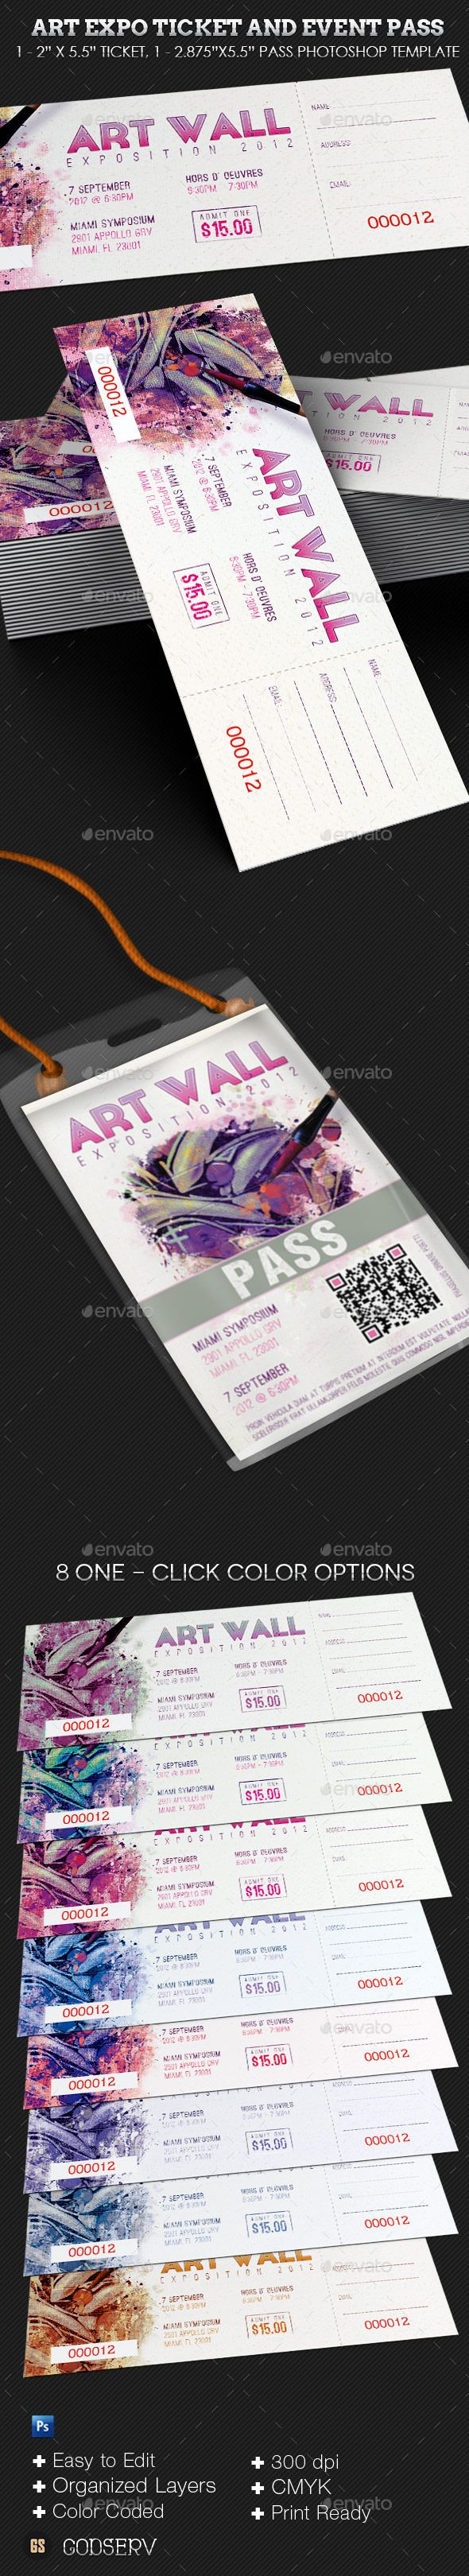 Art Expo Ticket and Event Pass Template - Miscellaneous Print Templates